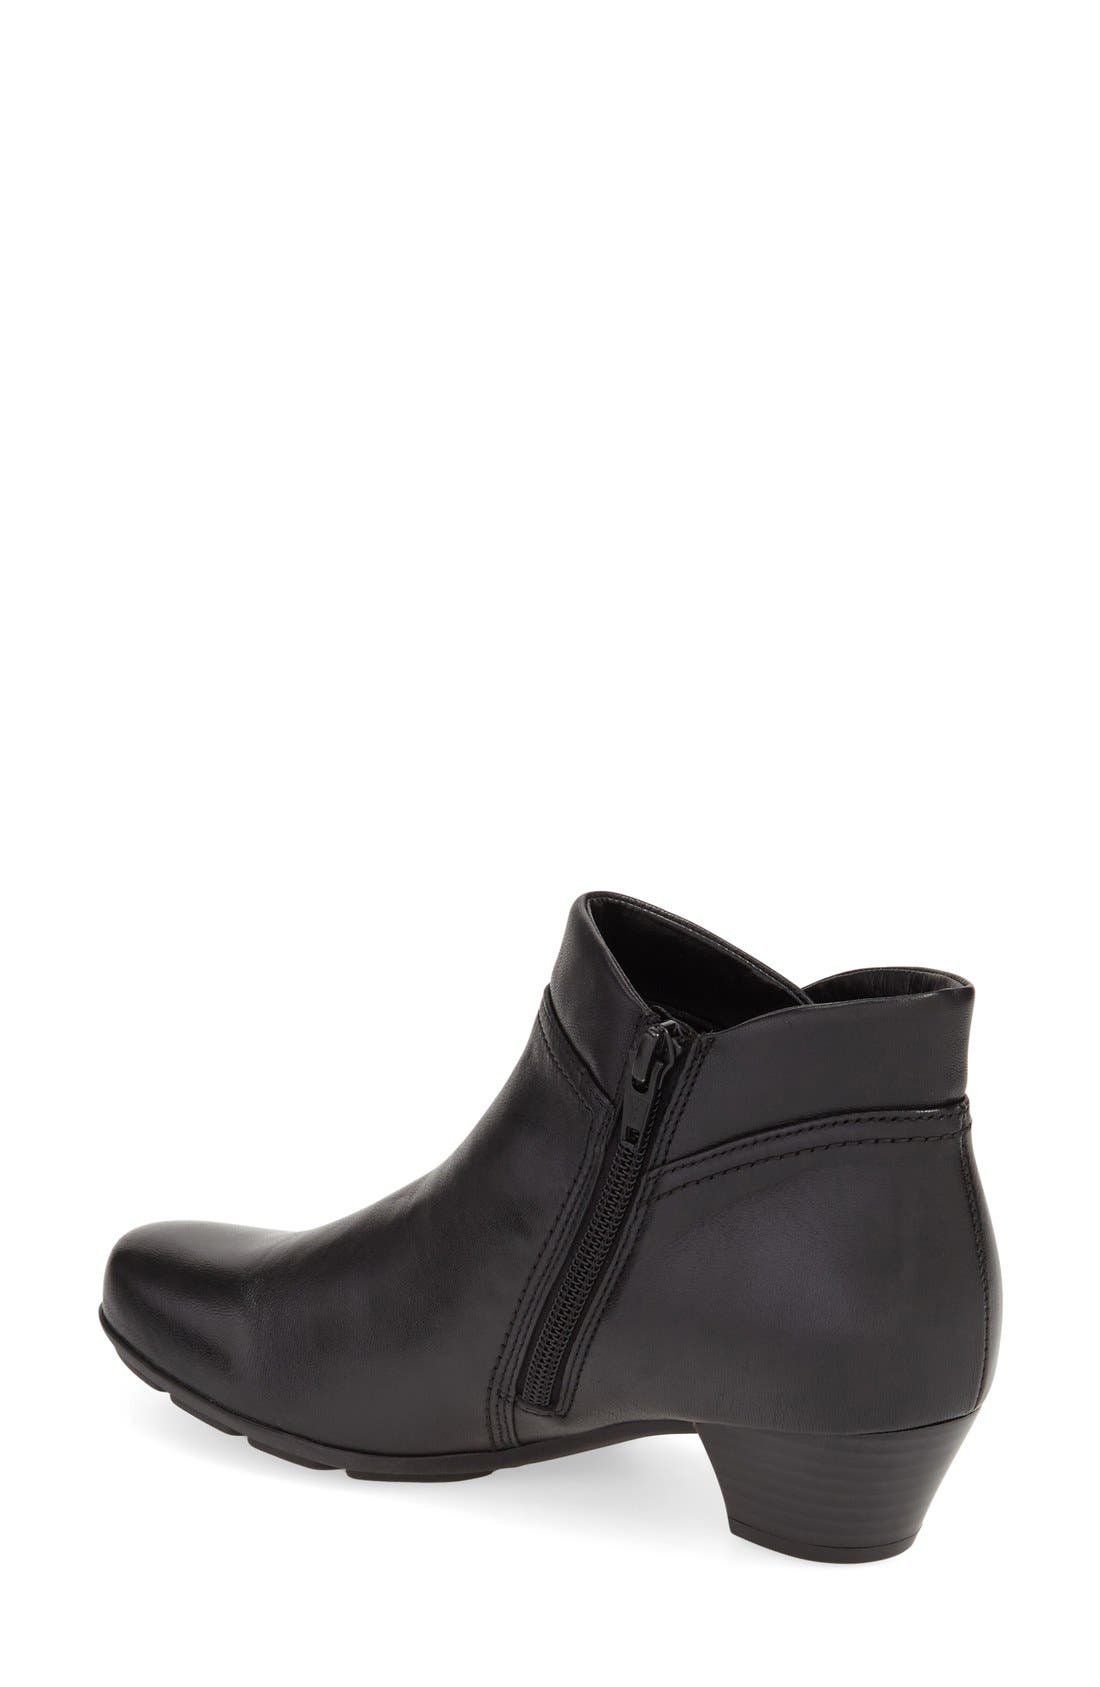 Ankle Bootie,                             Alternate thumbnail 2, color,                             BLACK LEATHER